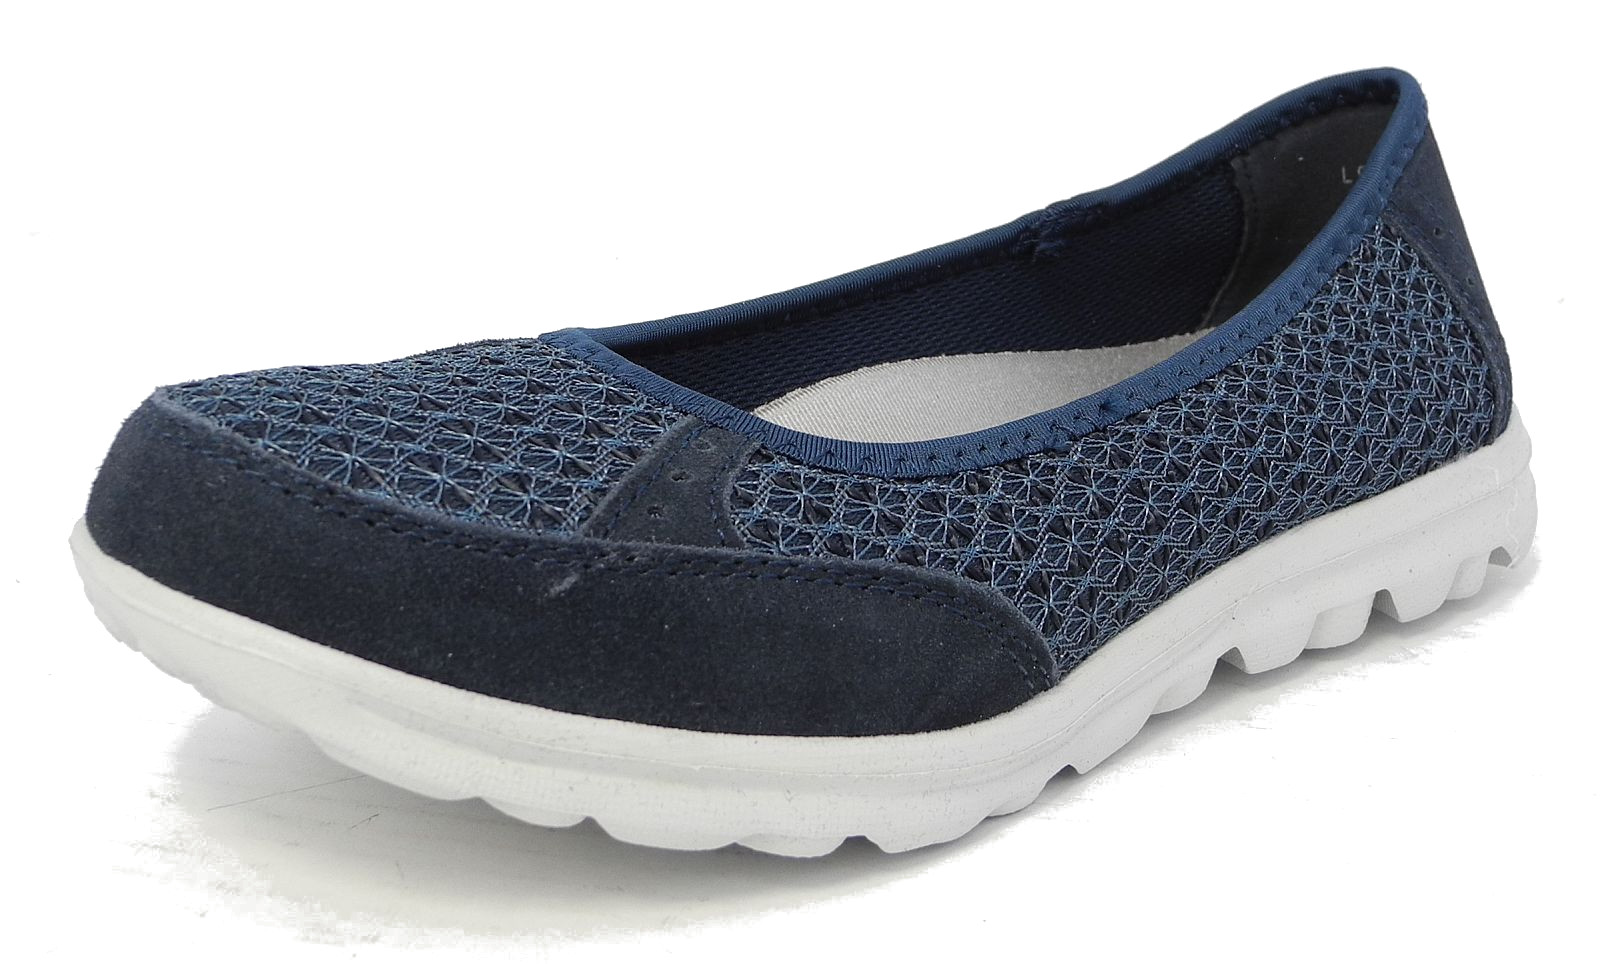 Lightweight Walking Shoes With Arch Support